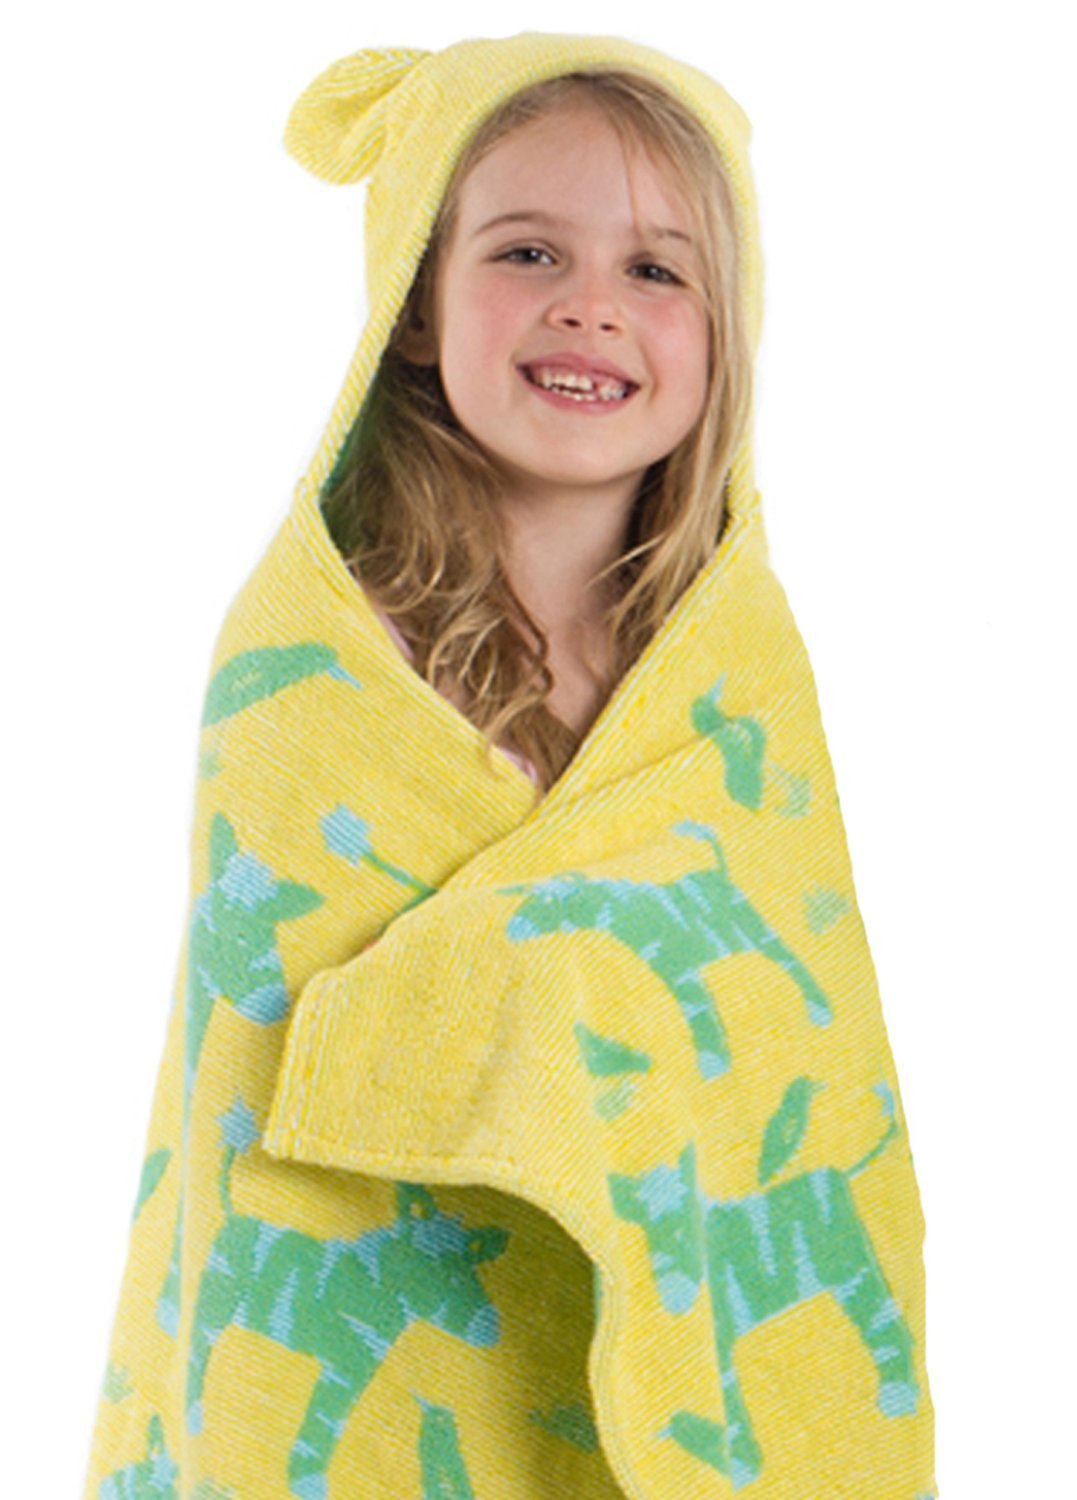 Breganwood Organics Kids Hooded Towel Yellow with Green Zebras, Thick, Soft & Absorbent with Jacquard Woven Design